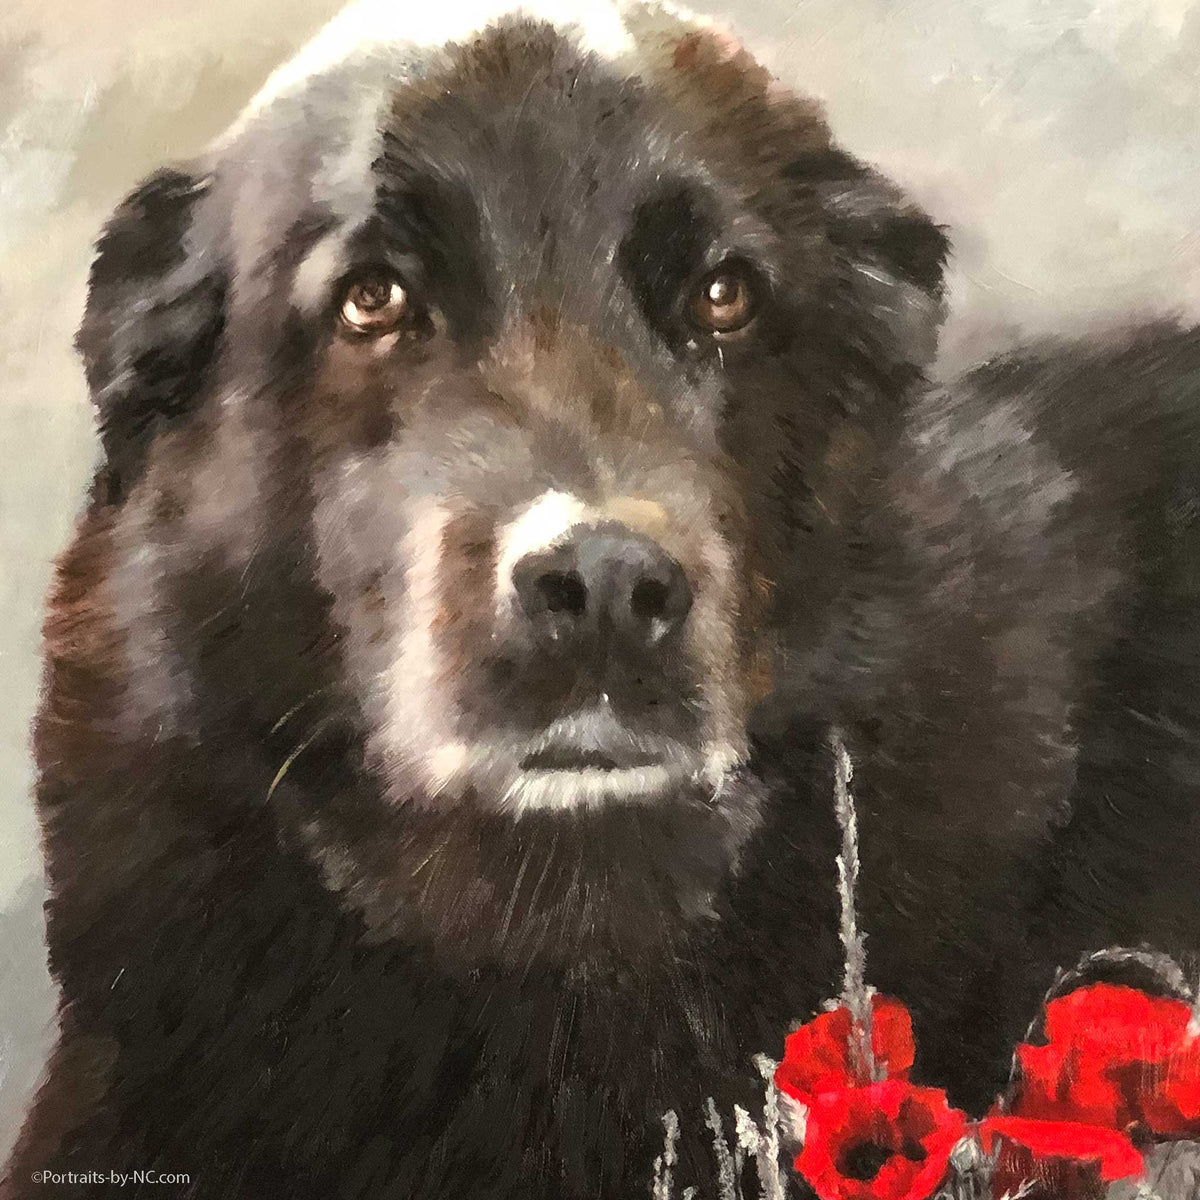 Pet Portrait of a Dog in a Poppy Field